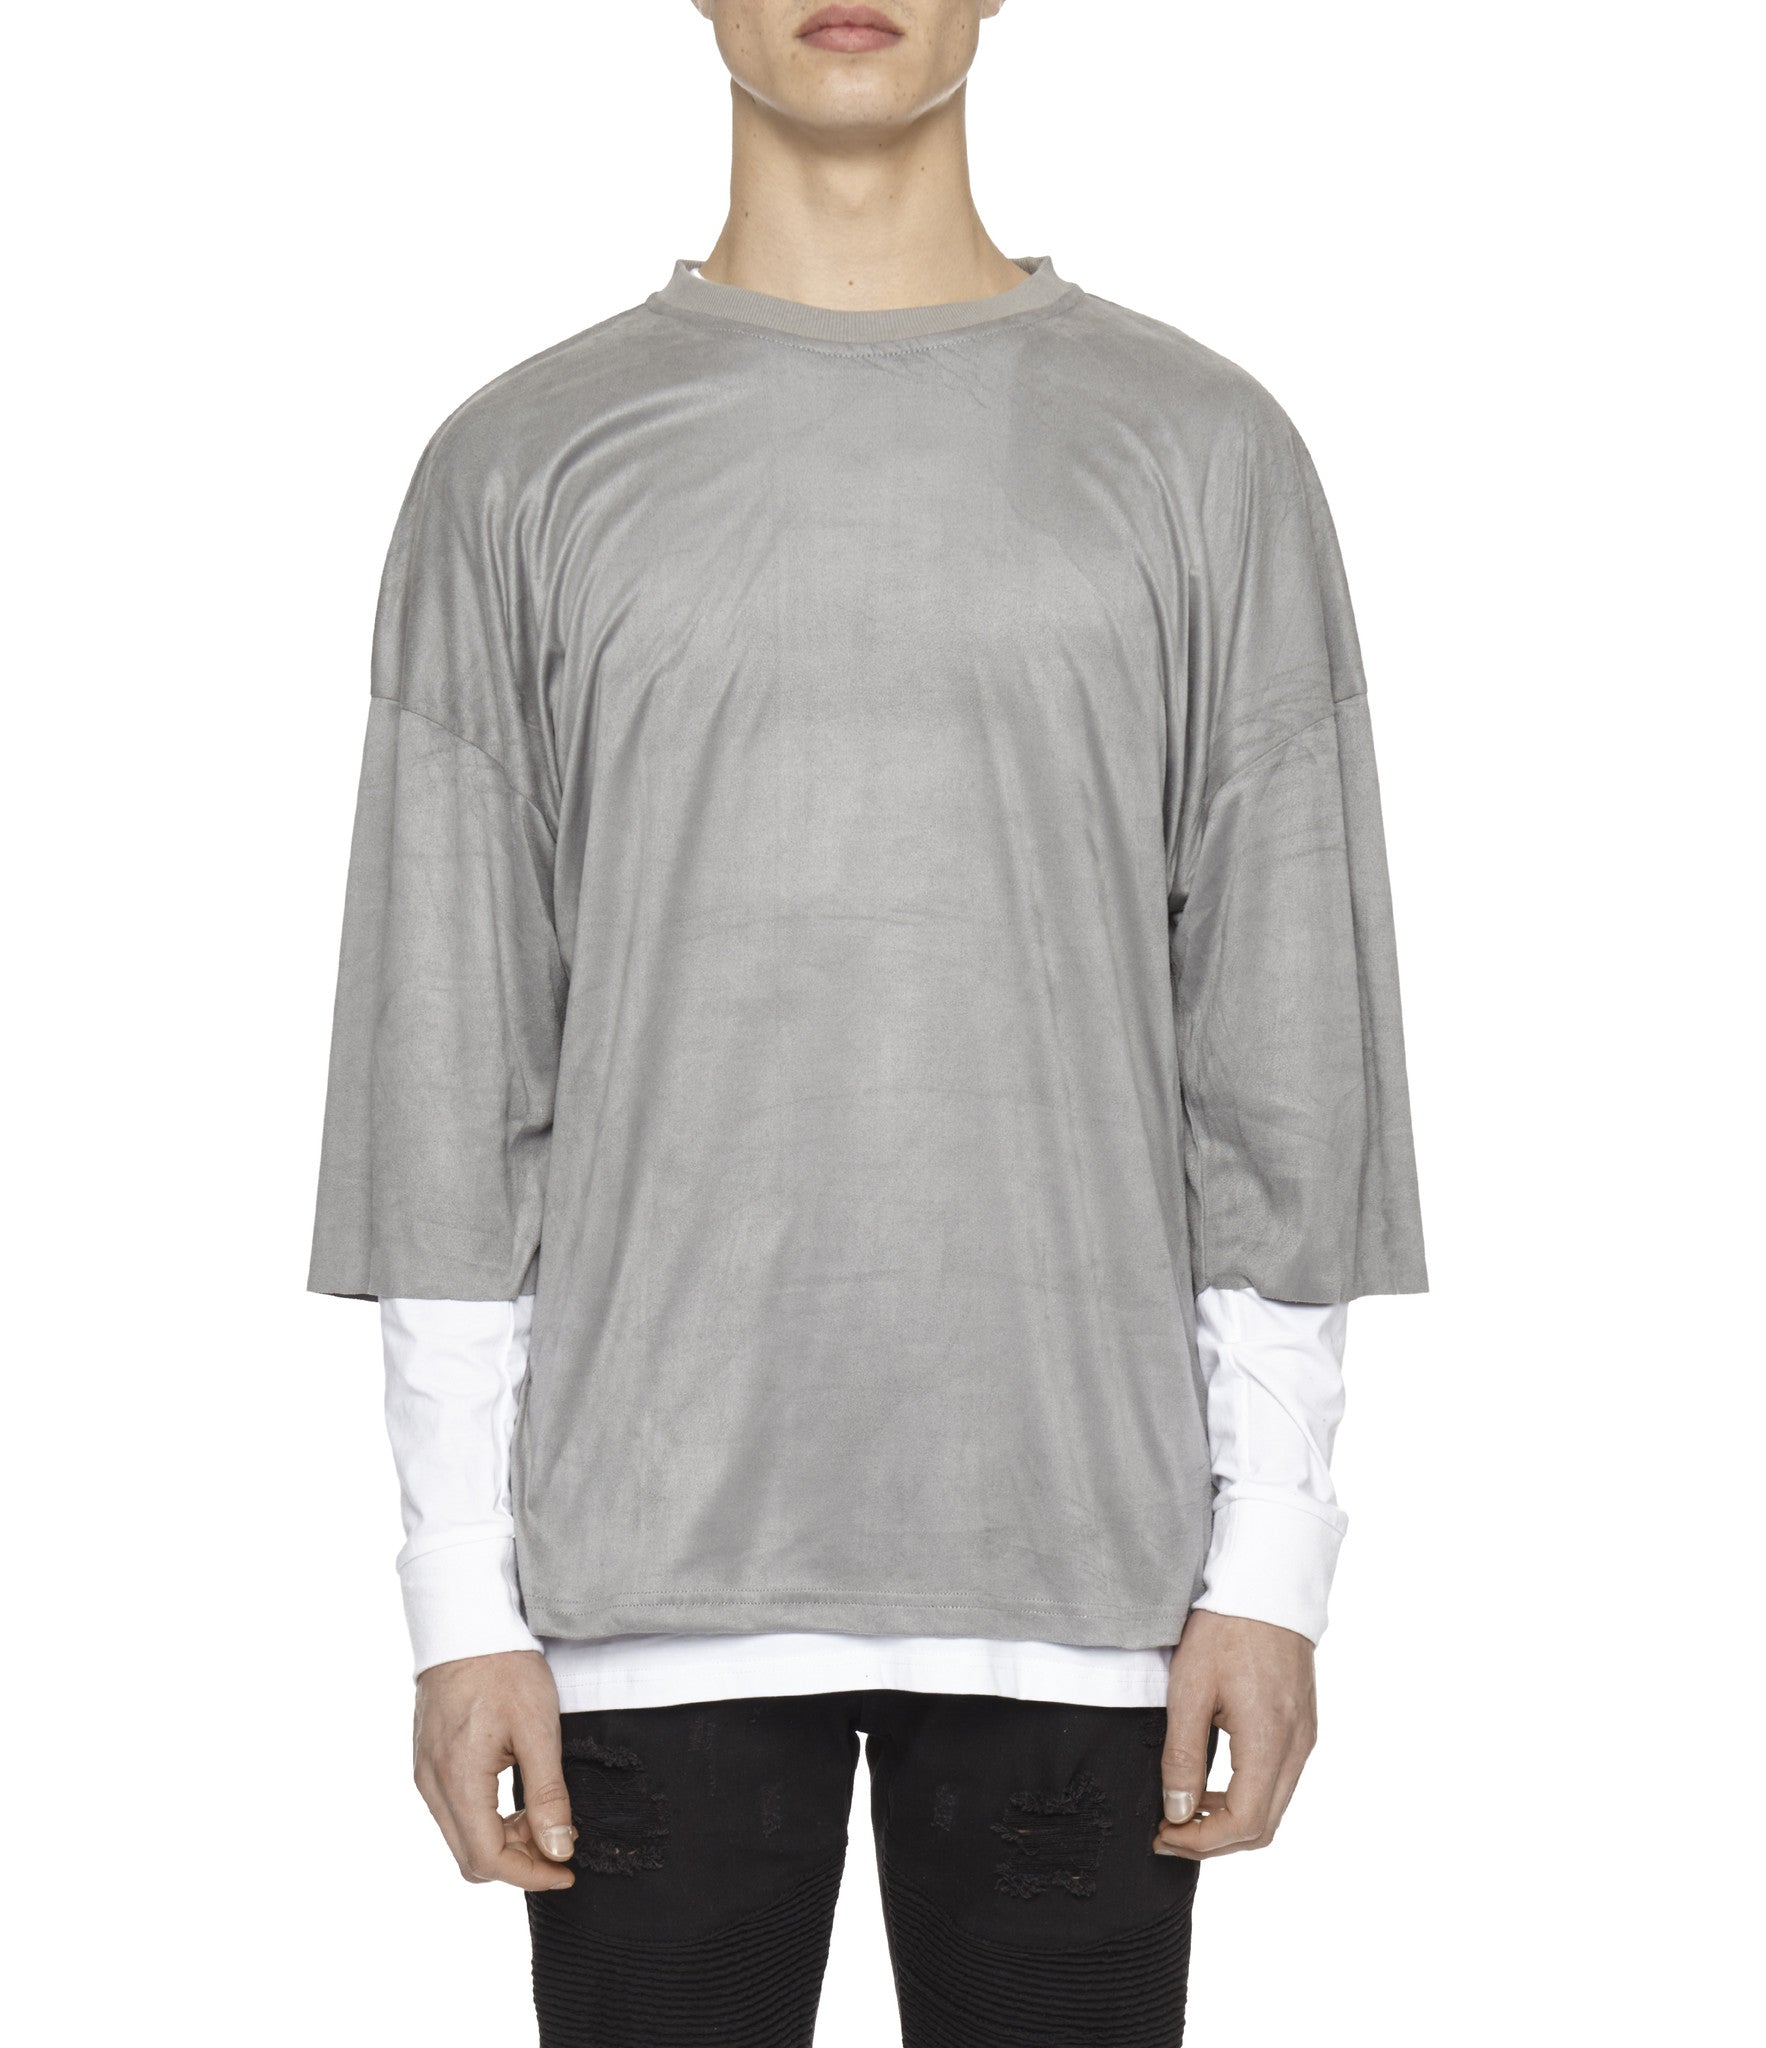 TS302 Suede Oversized Box Tee - Smokey Grey - underated london - underatedco - 1